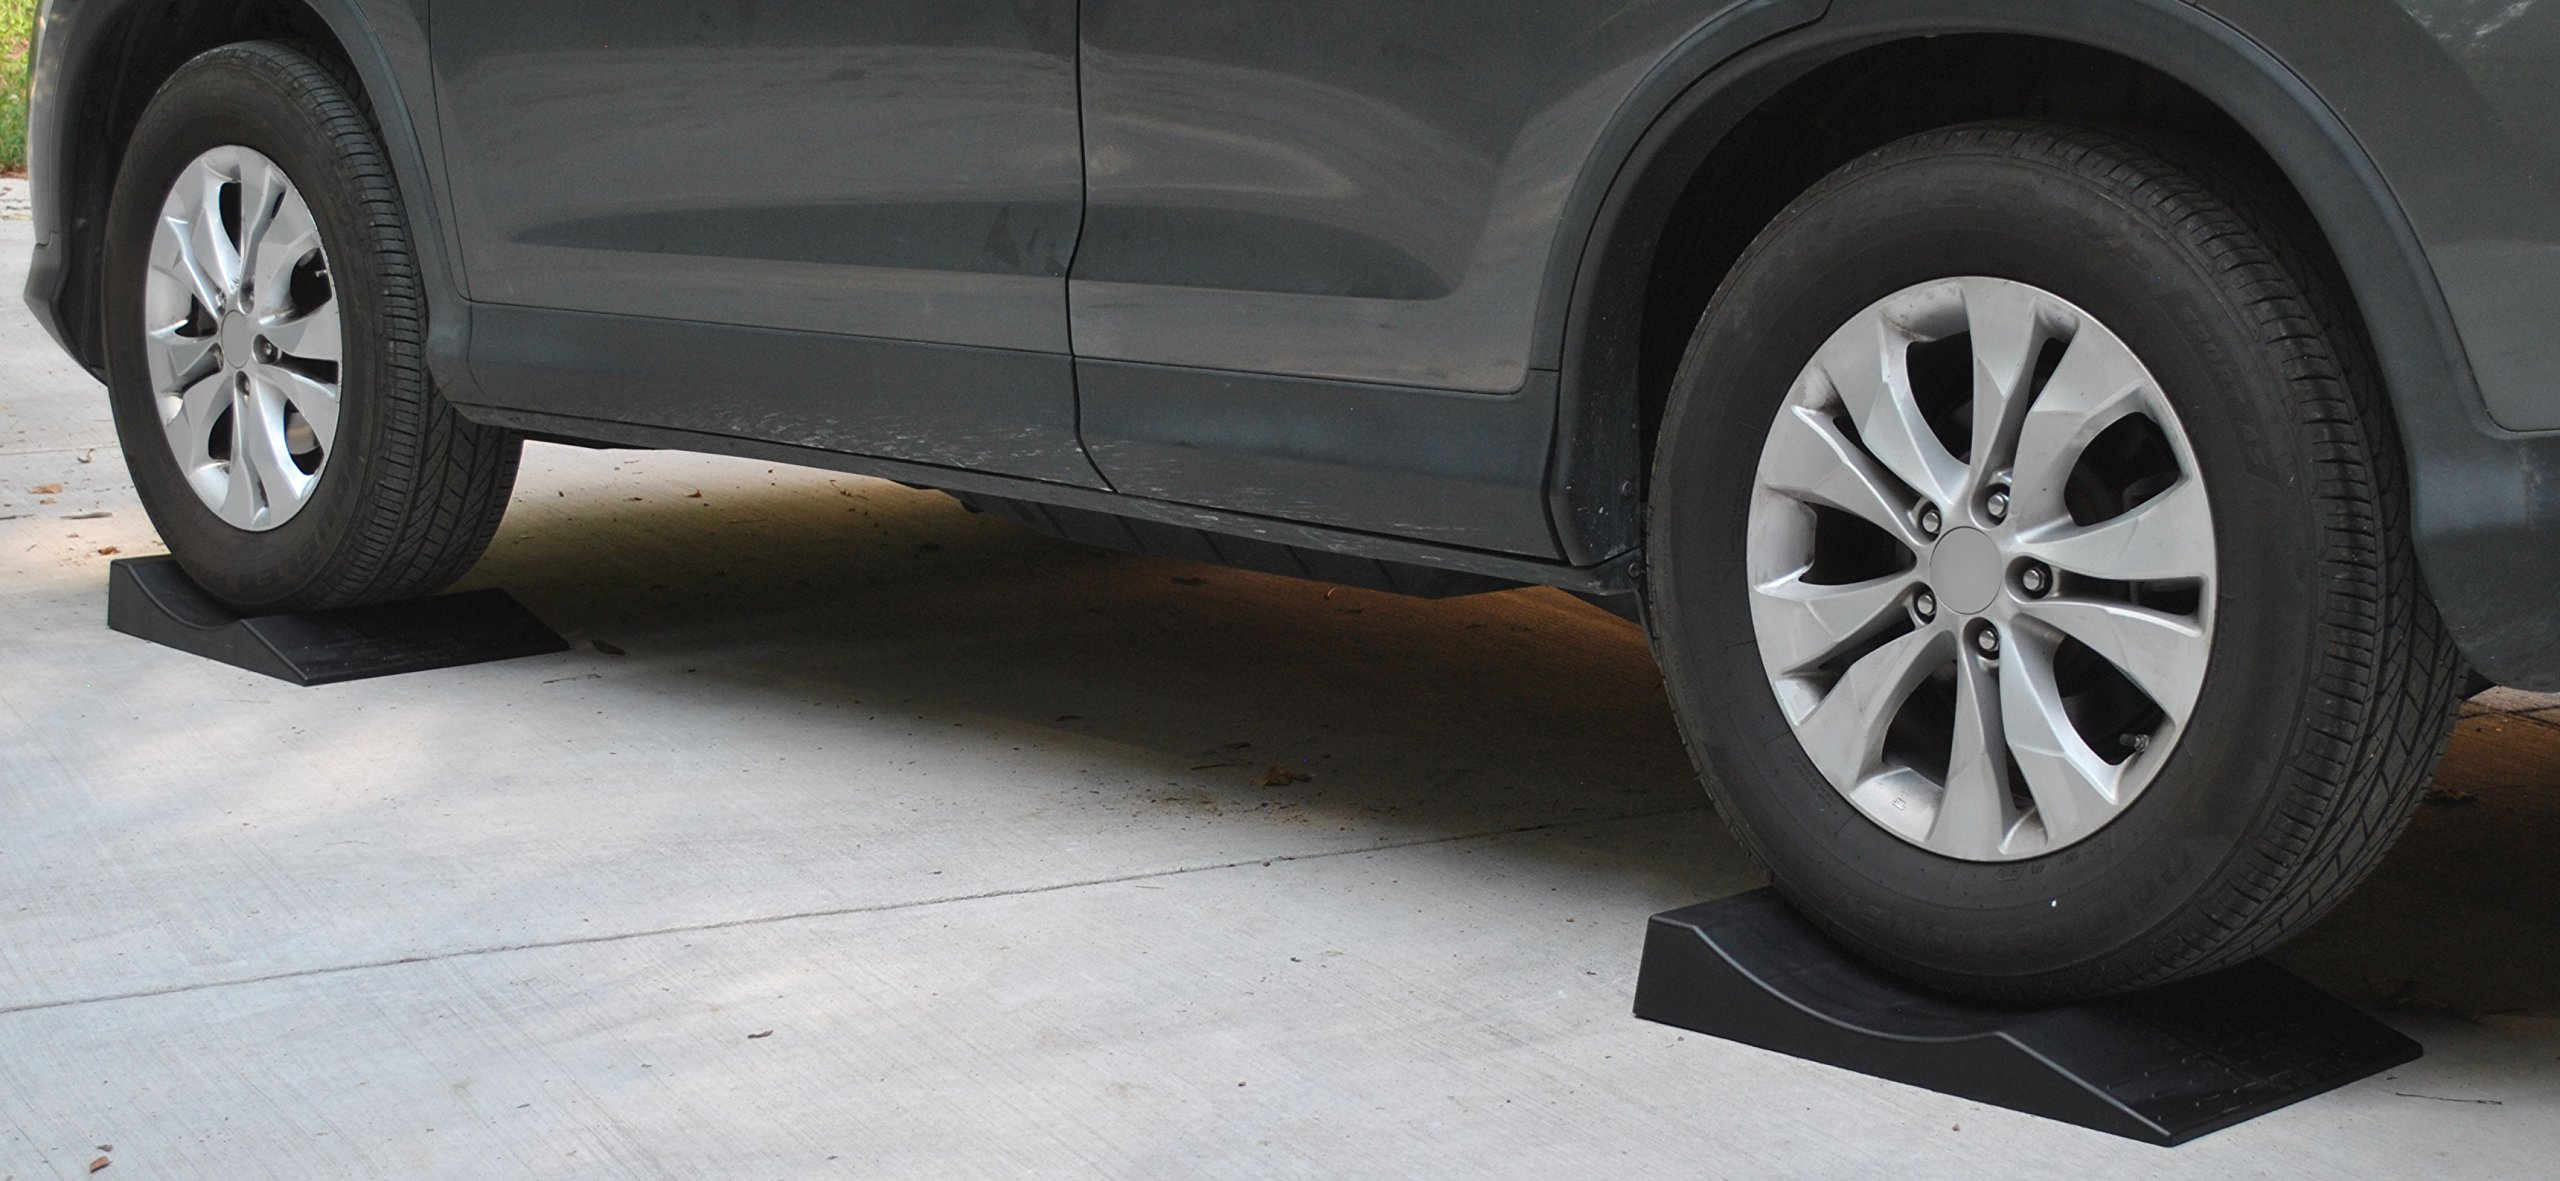 MAXSA 37353 Park Right Tire Saver Ramps for Flat Spot Prevention and Vehicle Storage (Set of 4), Black by Maxsa Innovations (Image #4)